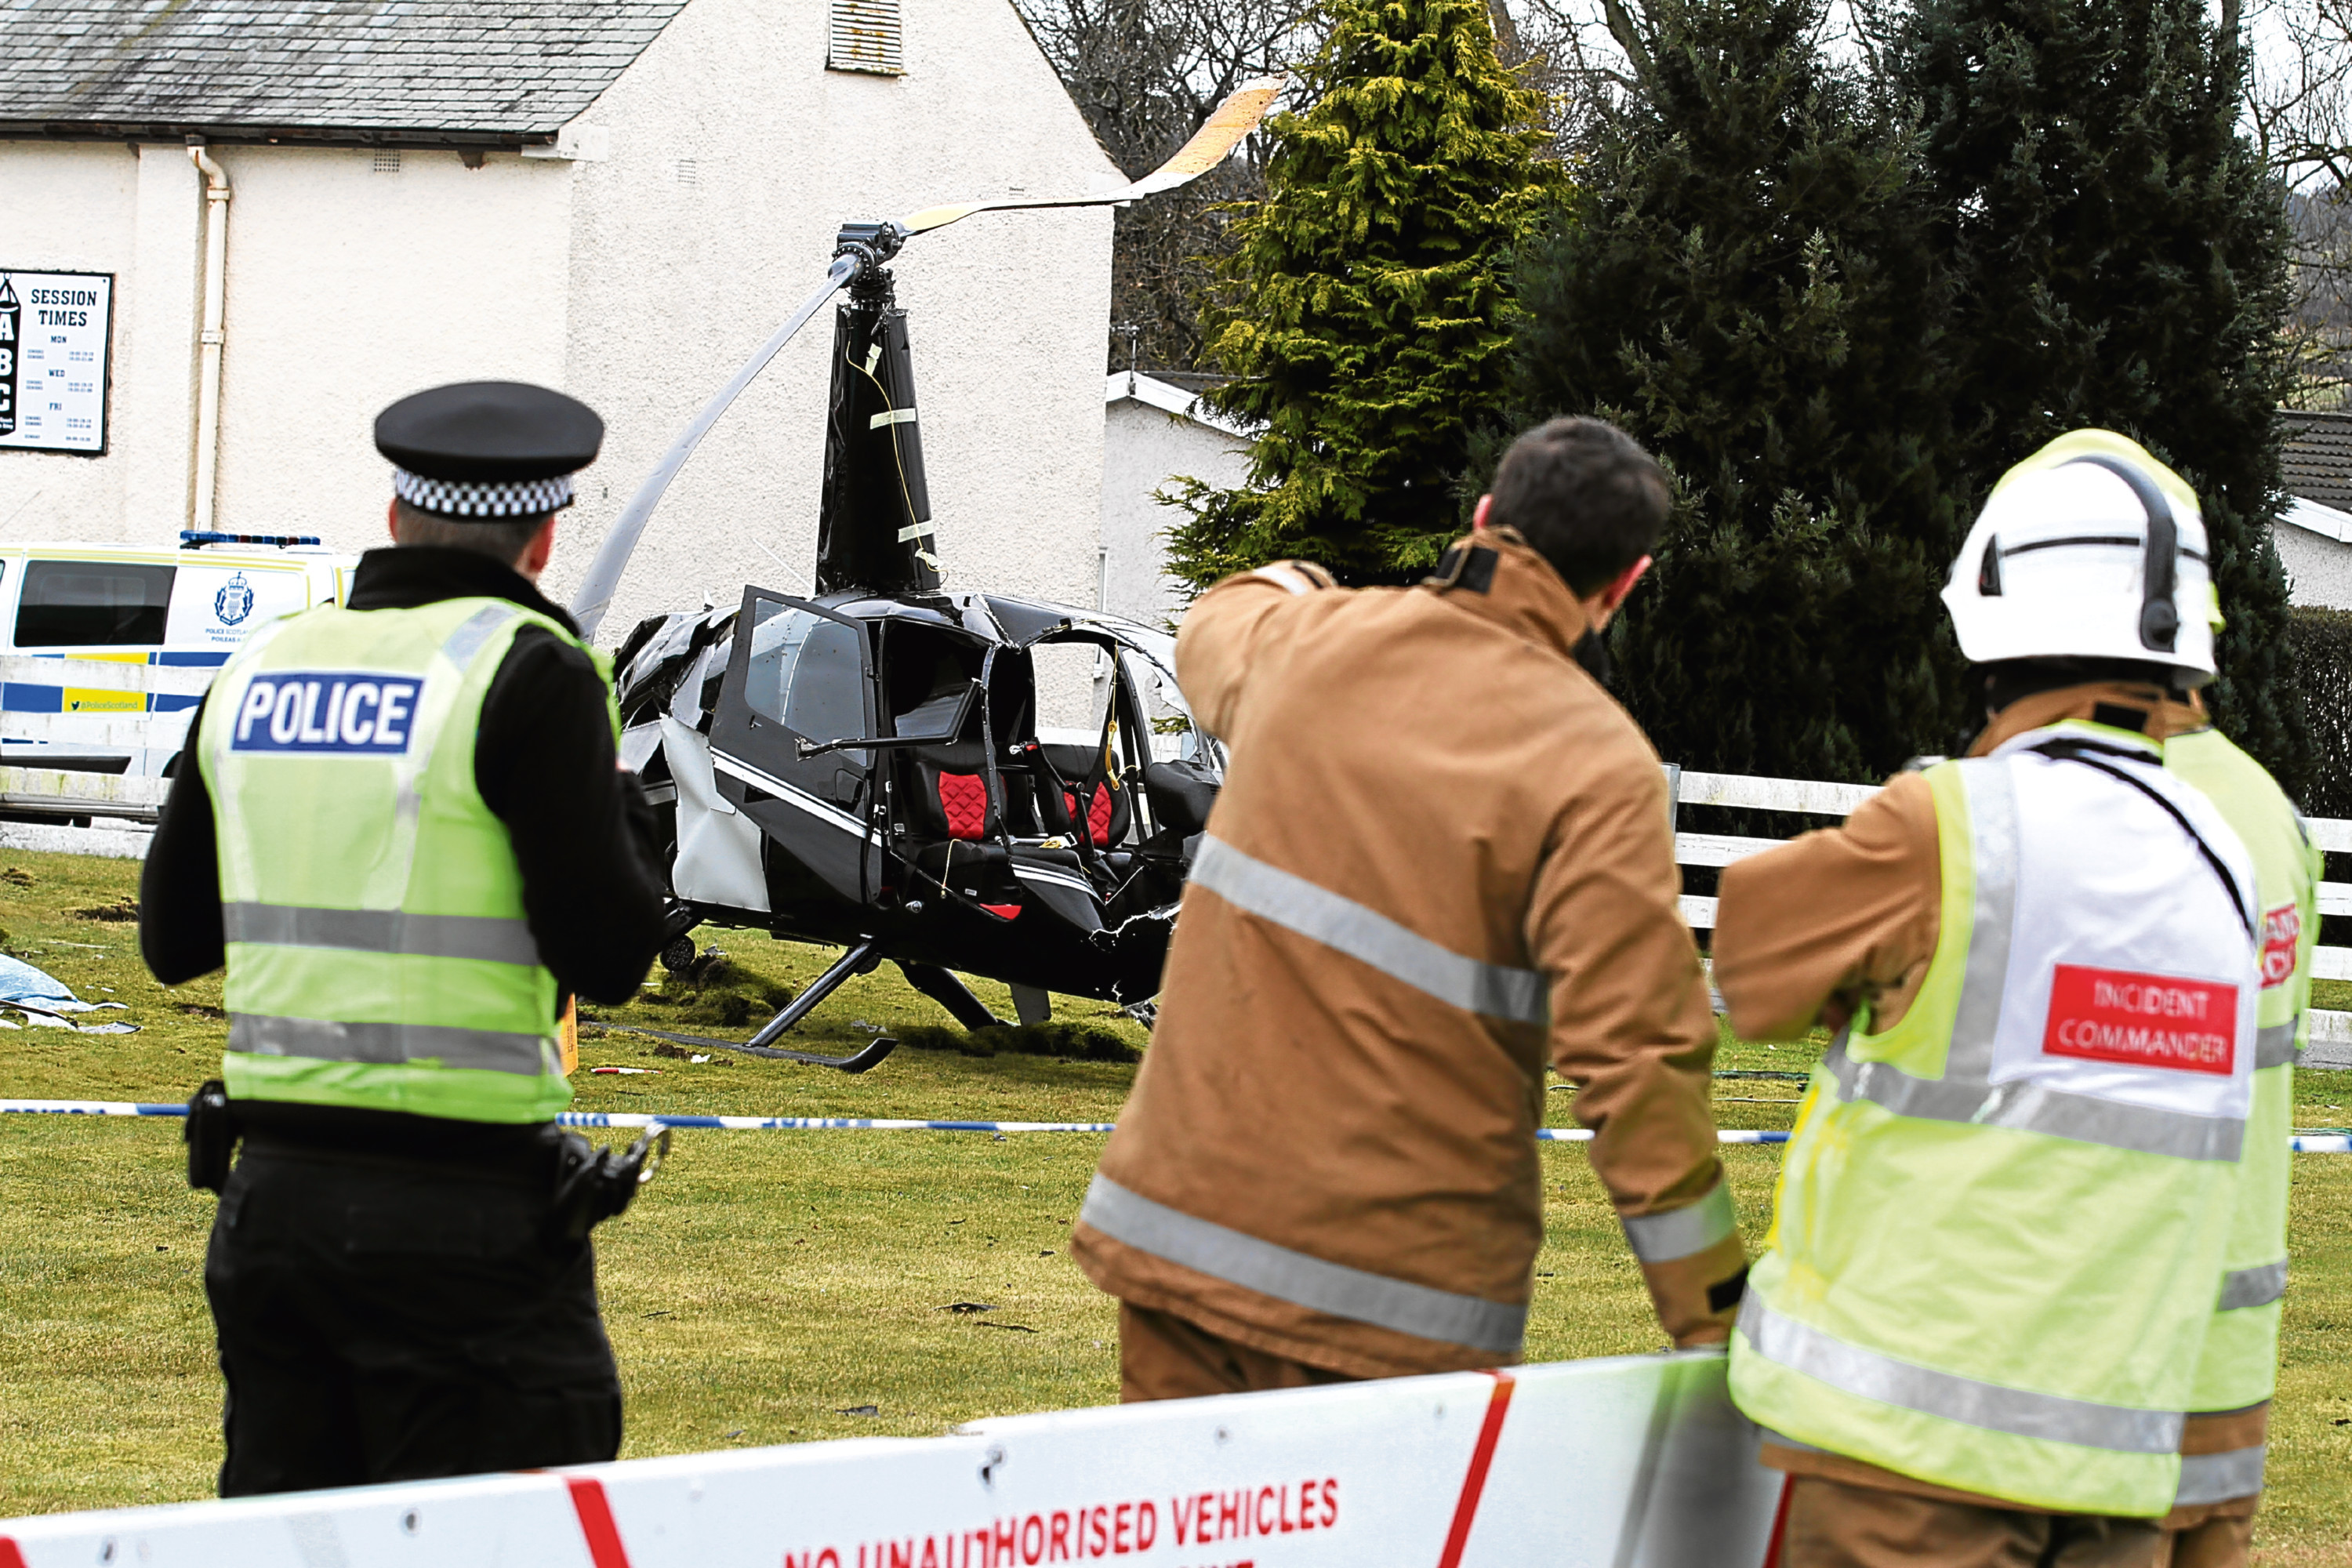 The crashed helicopter, with fire crews, police and other personnel dealing with the incident